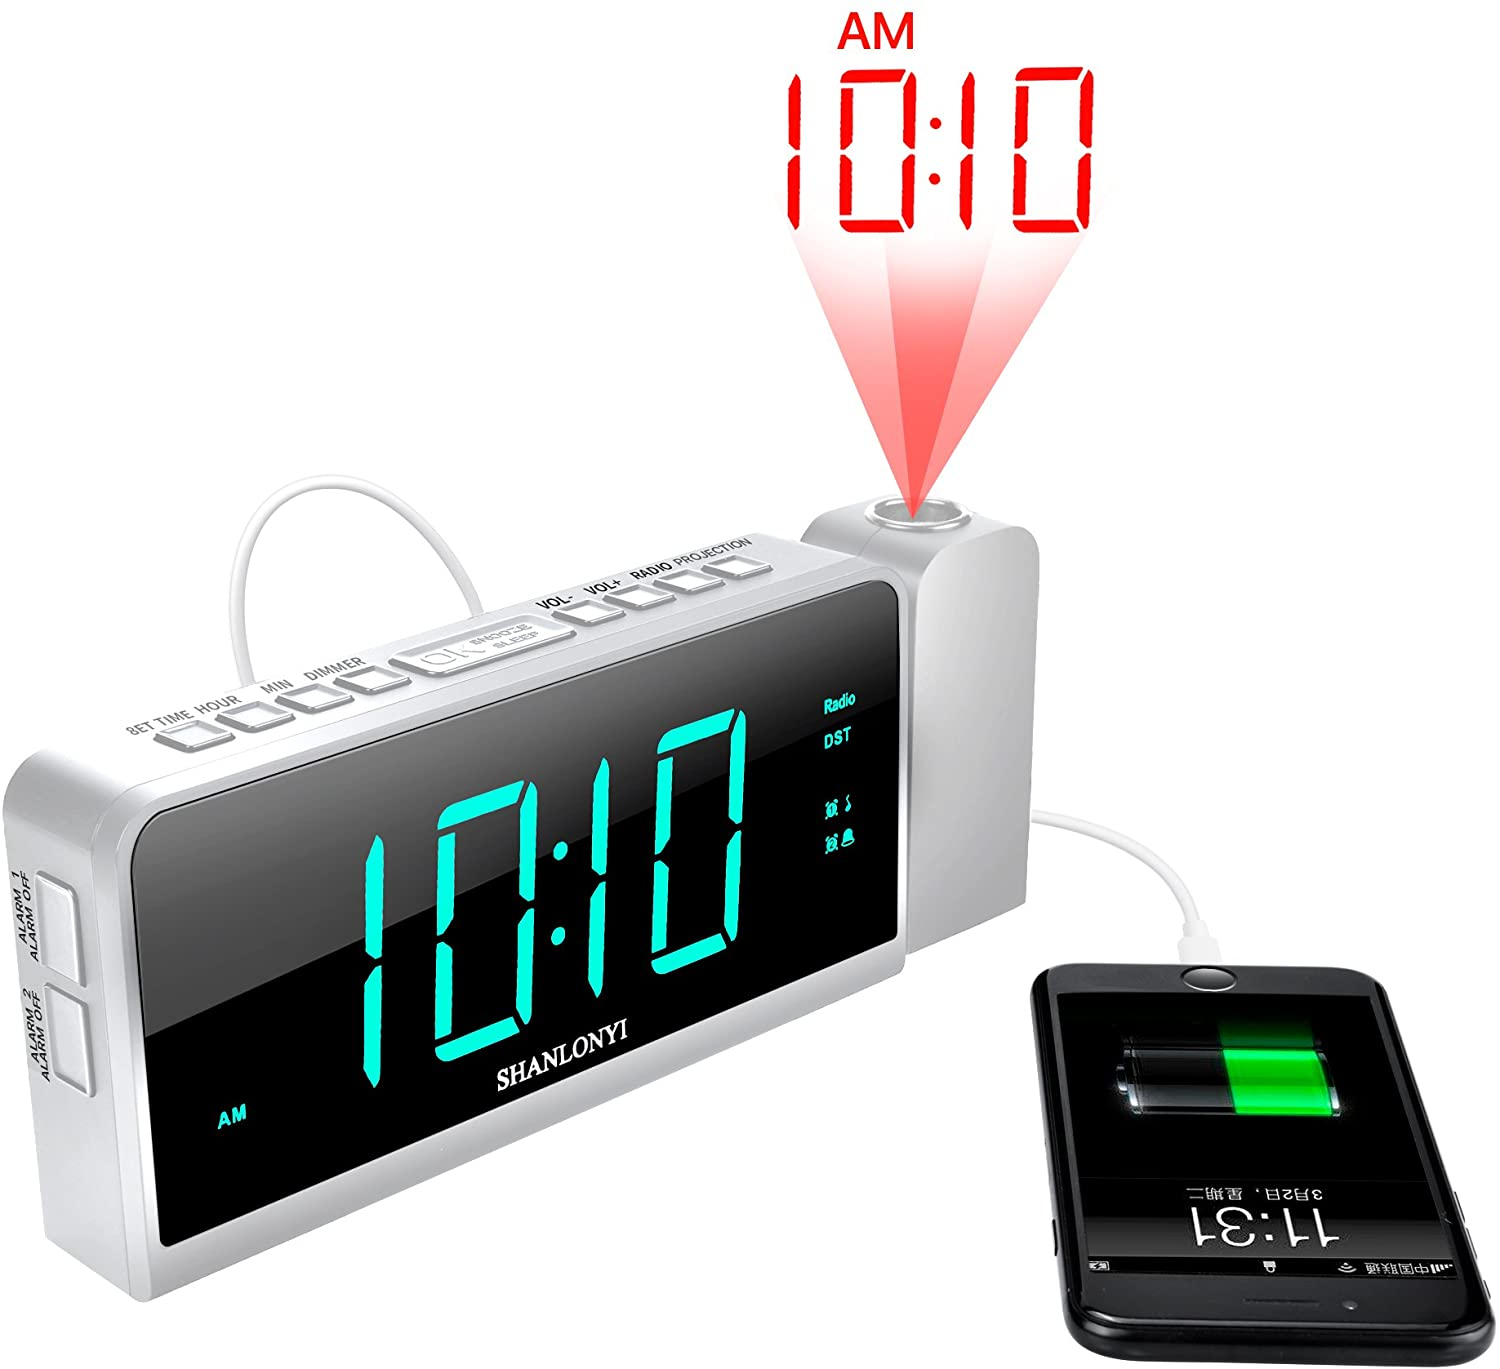 SHANLONYI Projection Alarm Clock